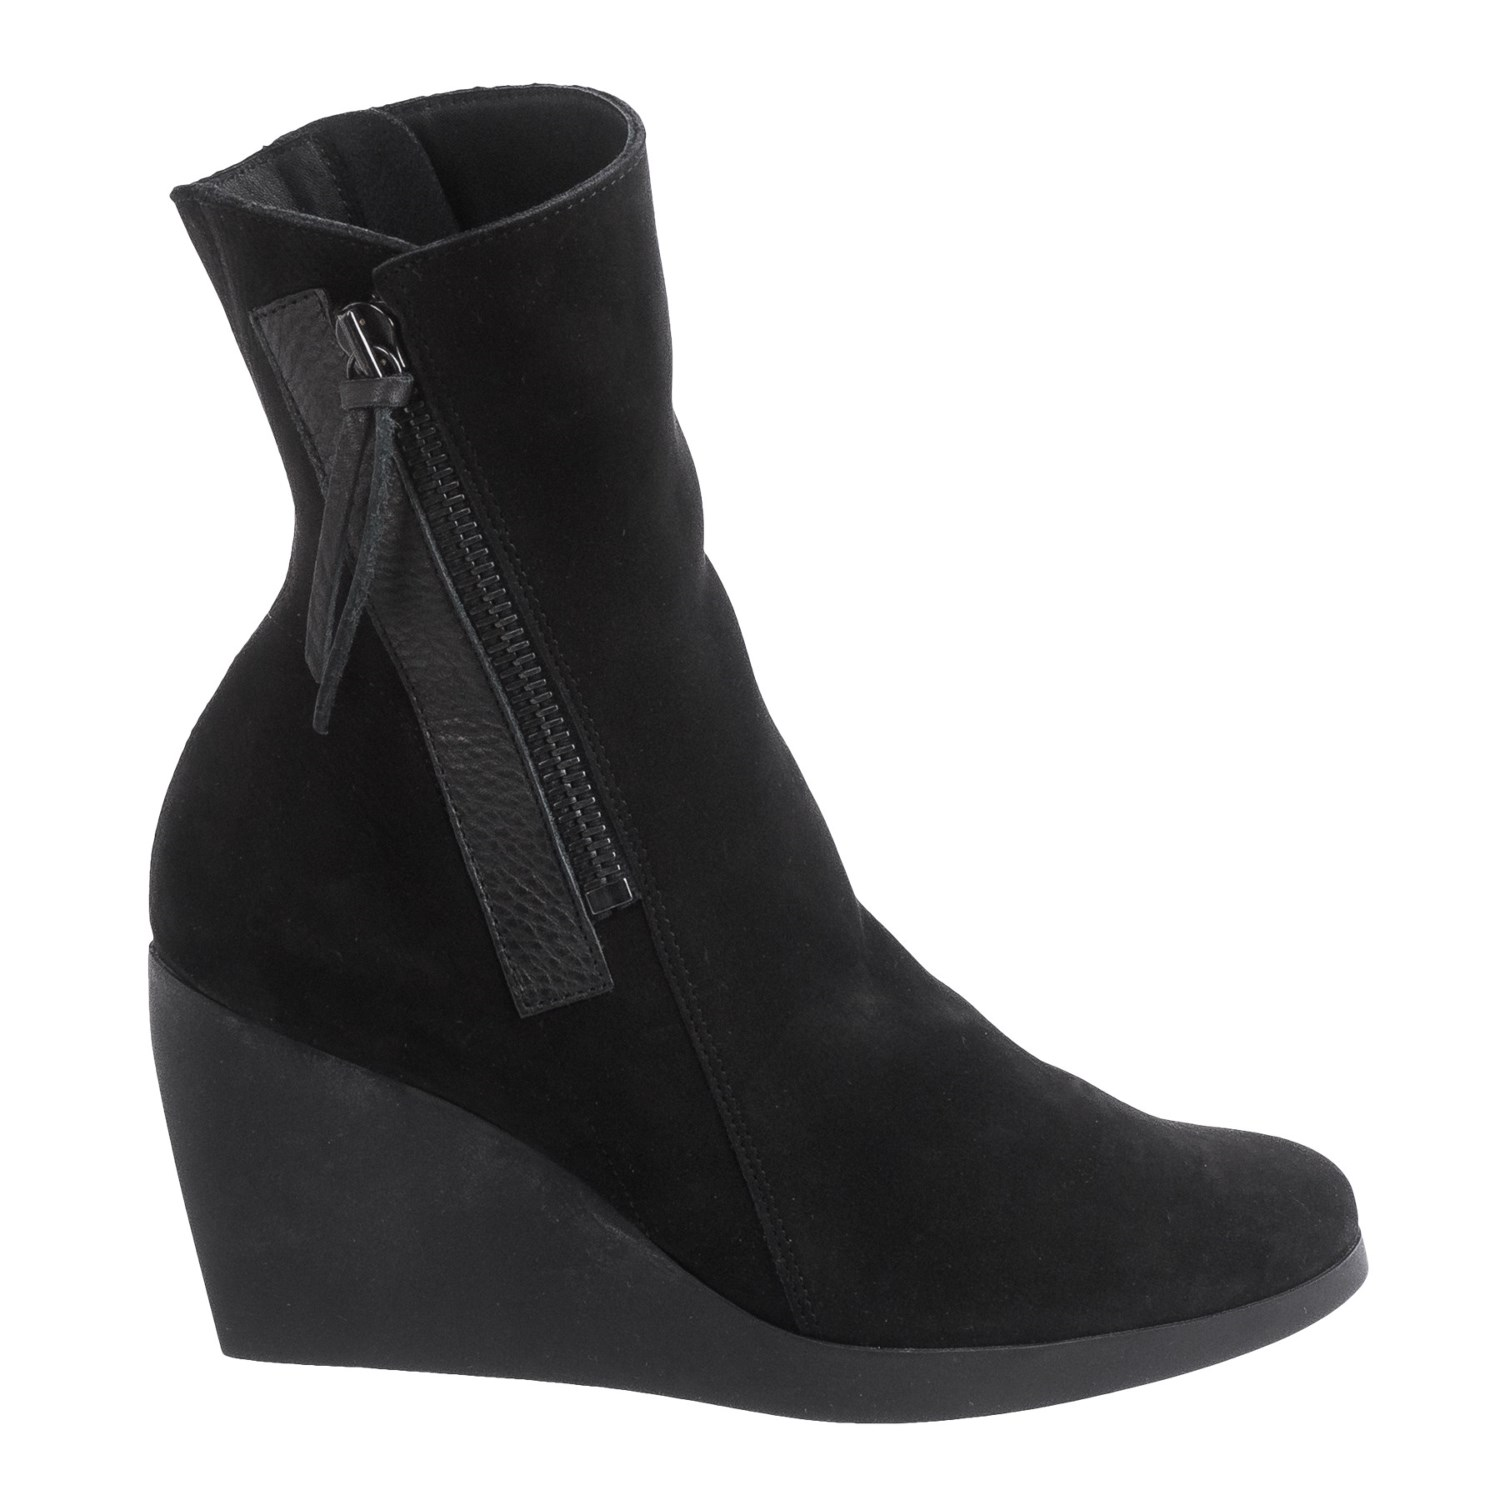 2f070482d2dc Arche Vitahe Wedge Boots (For Women) - Save 67%